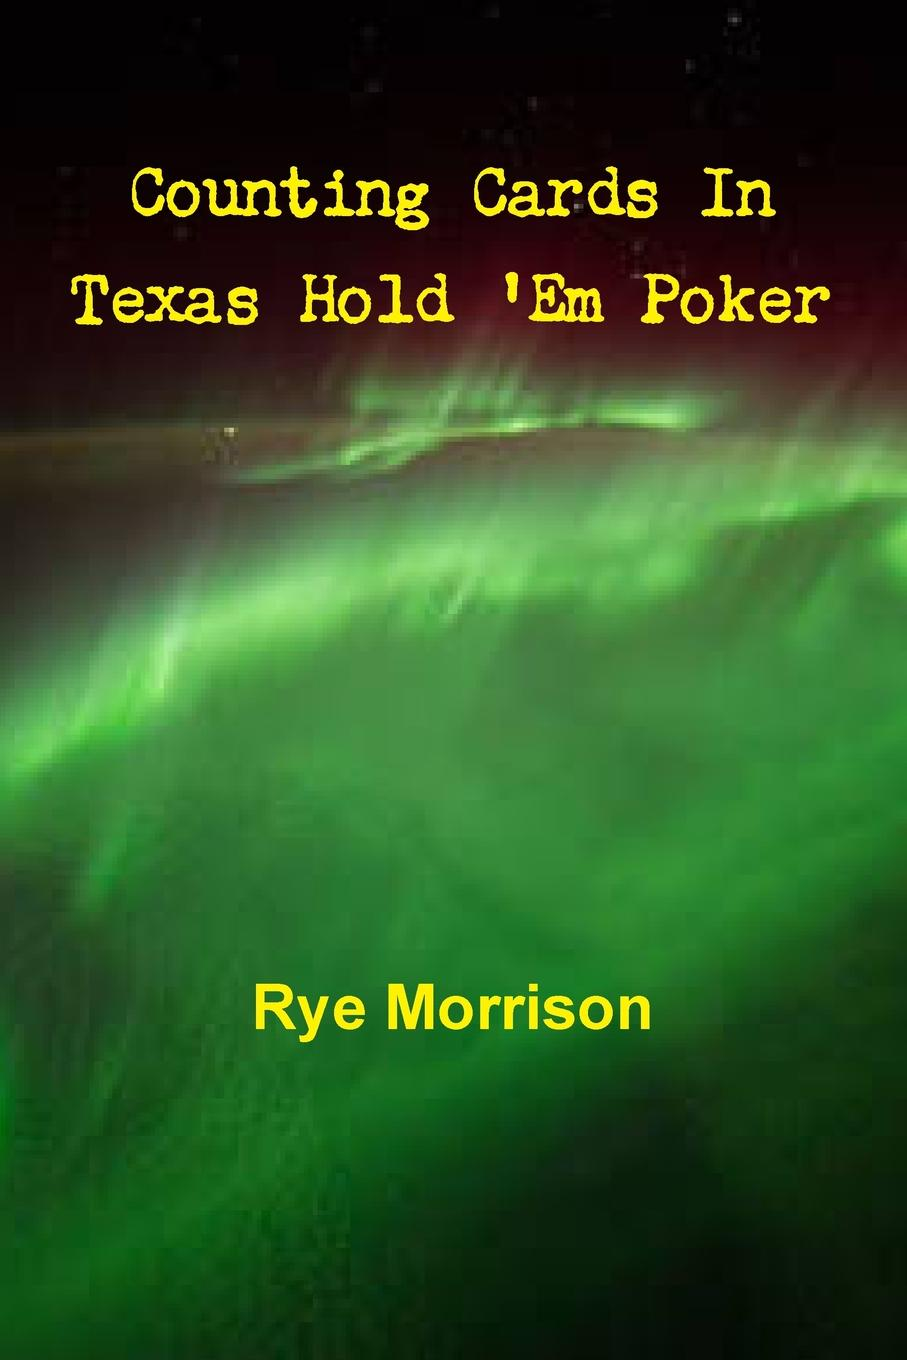 Rye Morrison Counting Cards In Texas Hold .Em Poker xf texas hold em side marked cards for poker analyzer poker scanner poker predictor cheat in gamble